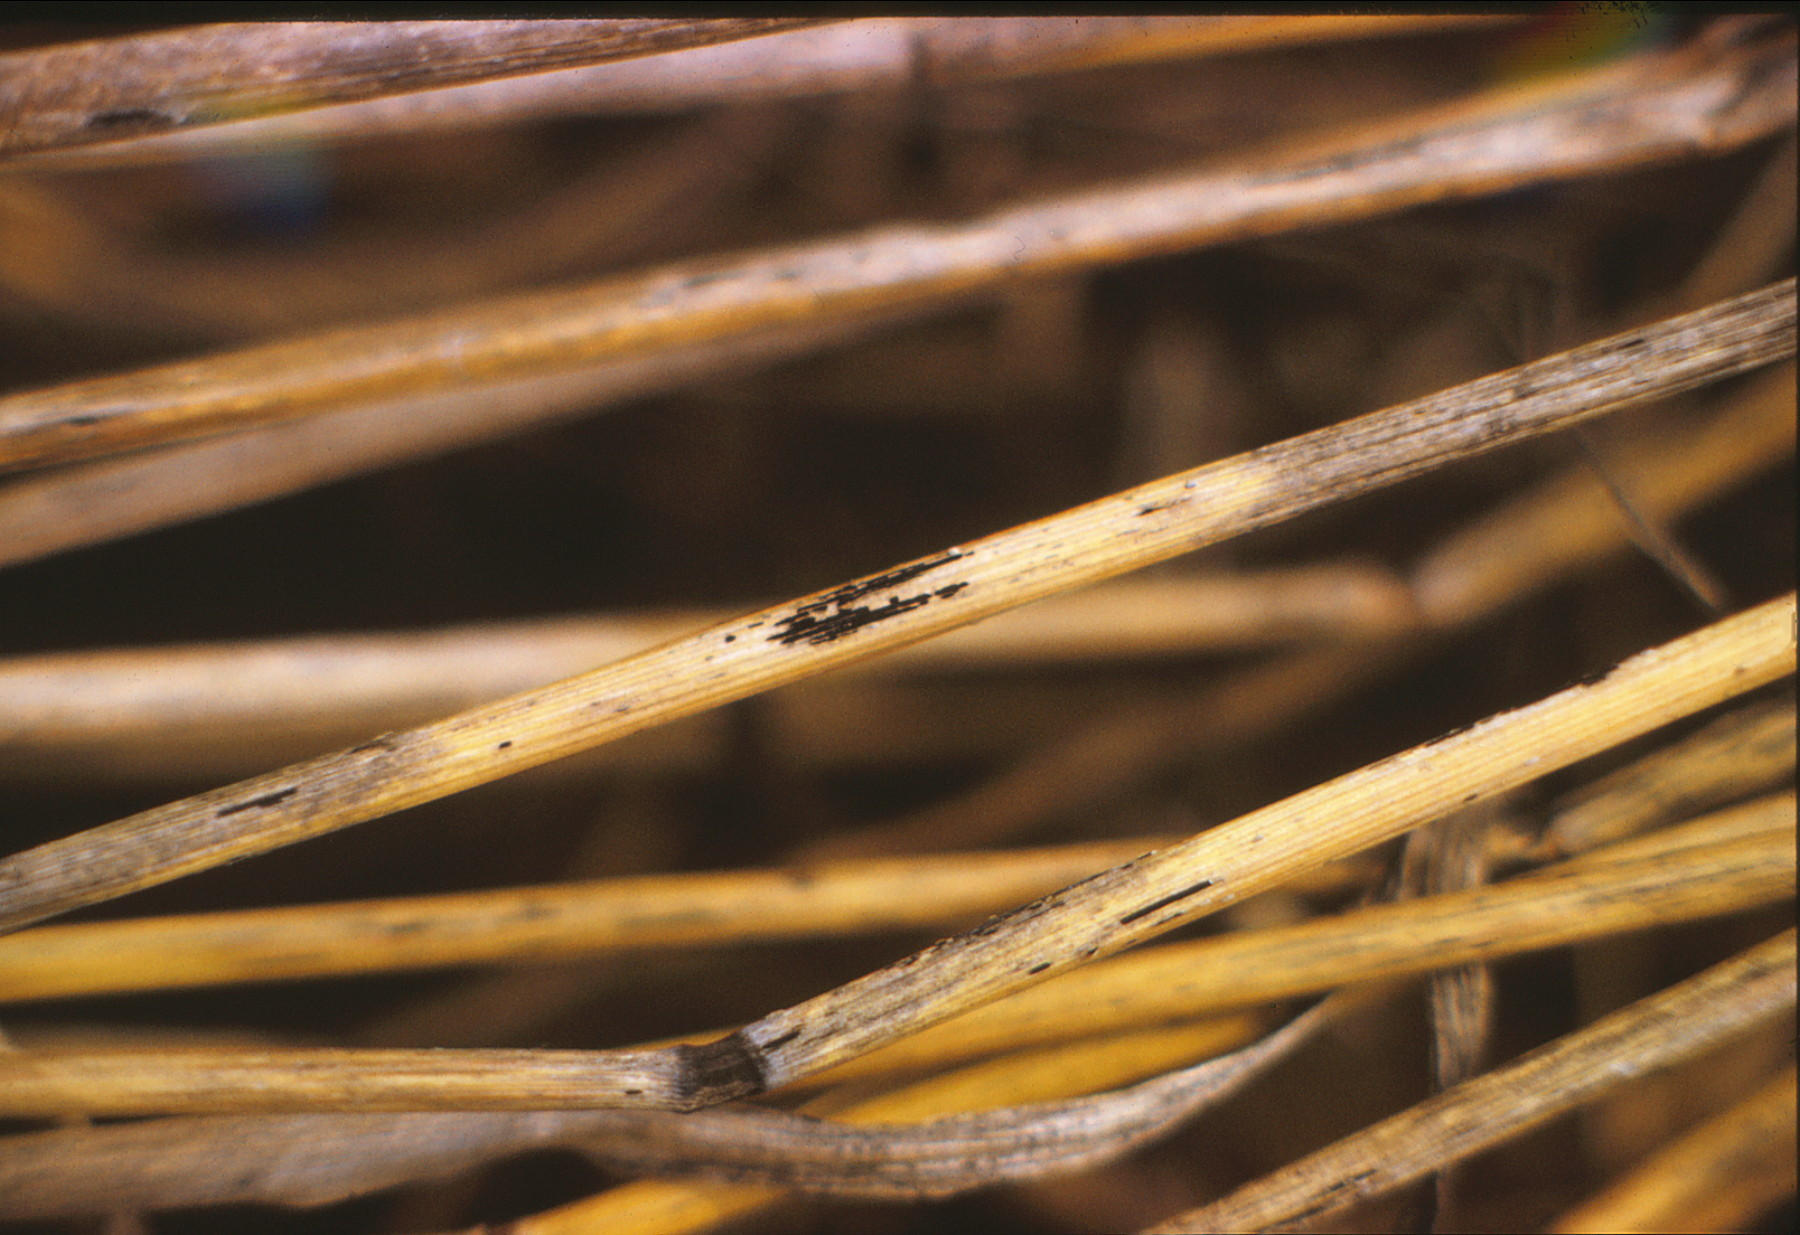 Stem rust on dead wheat stems.